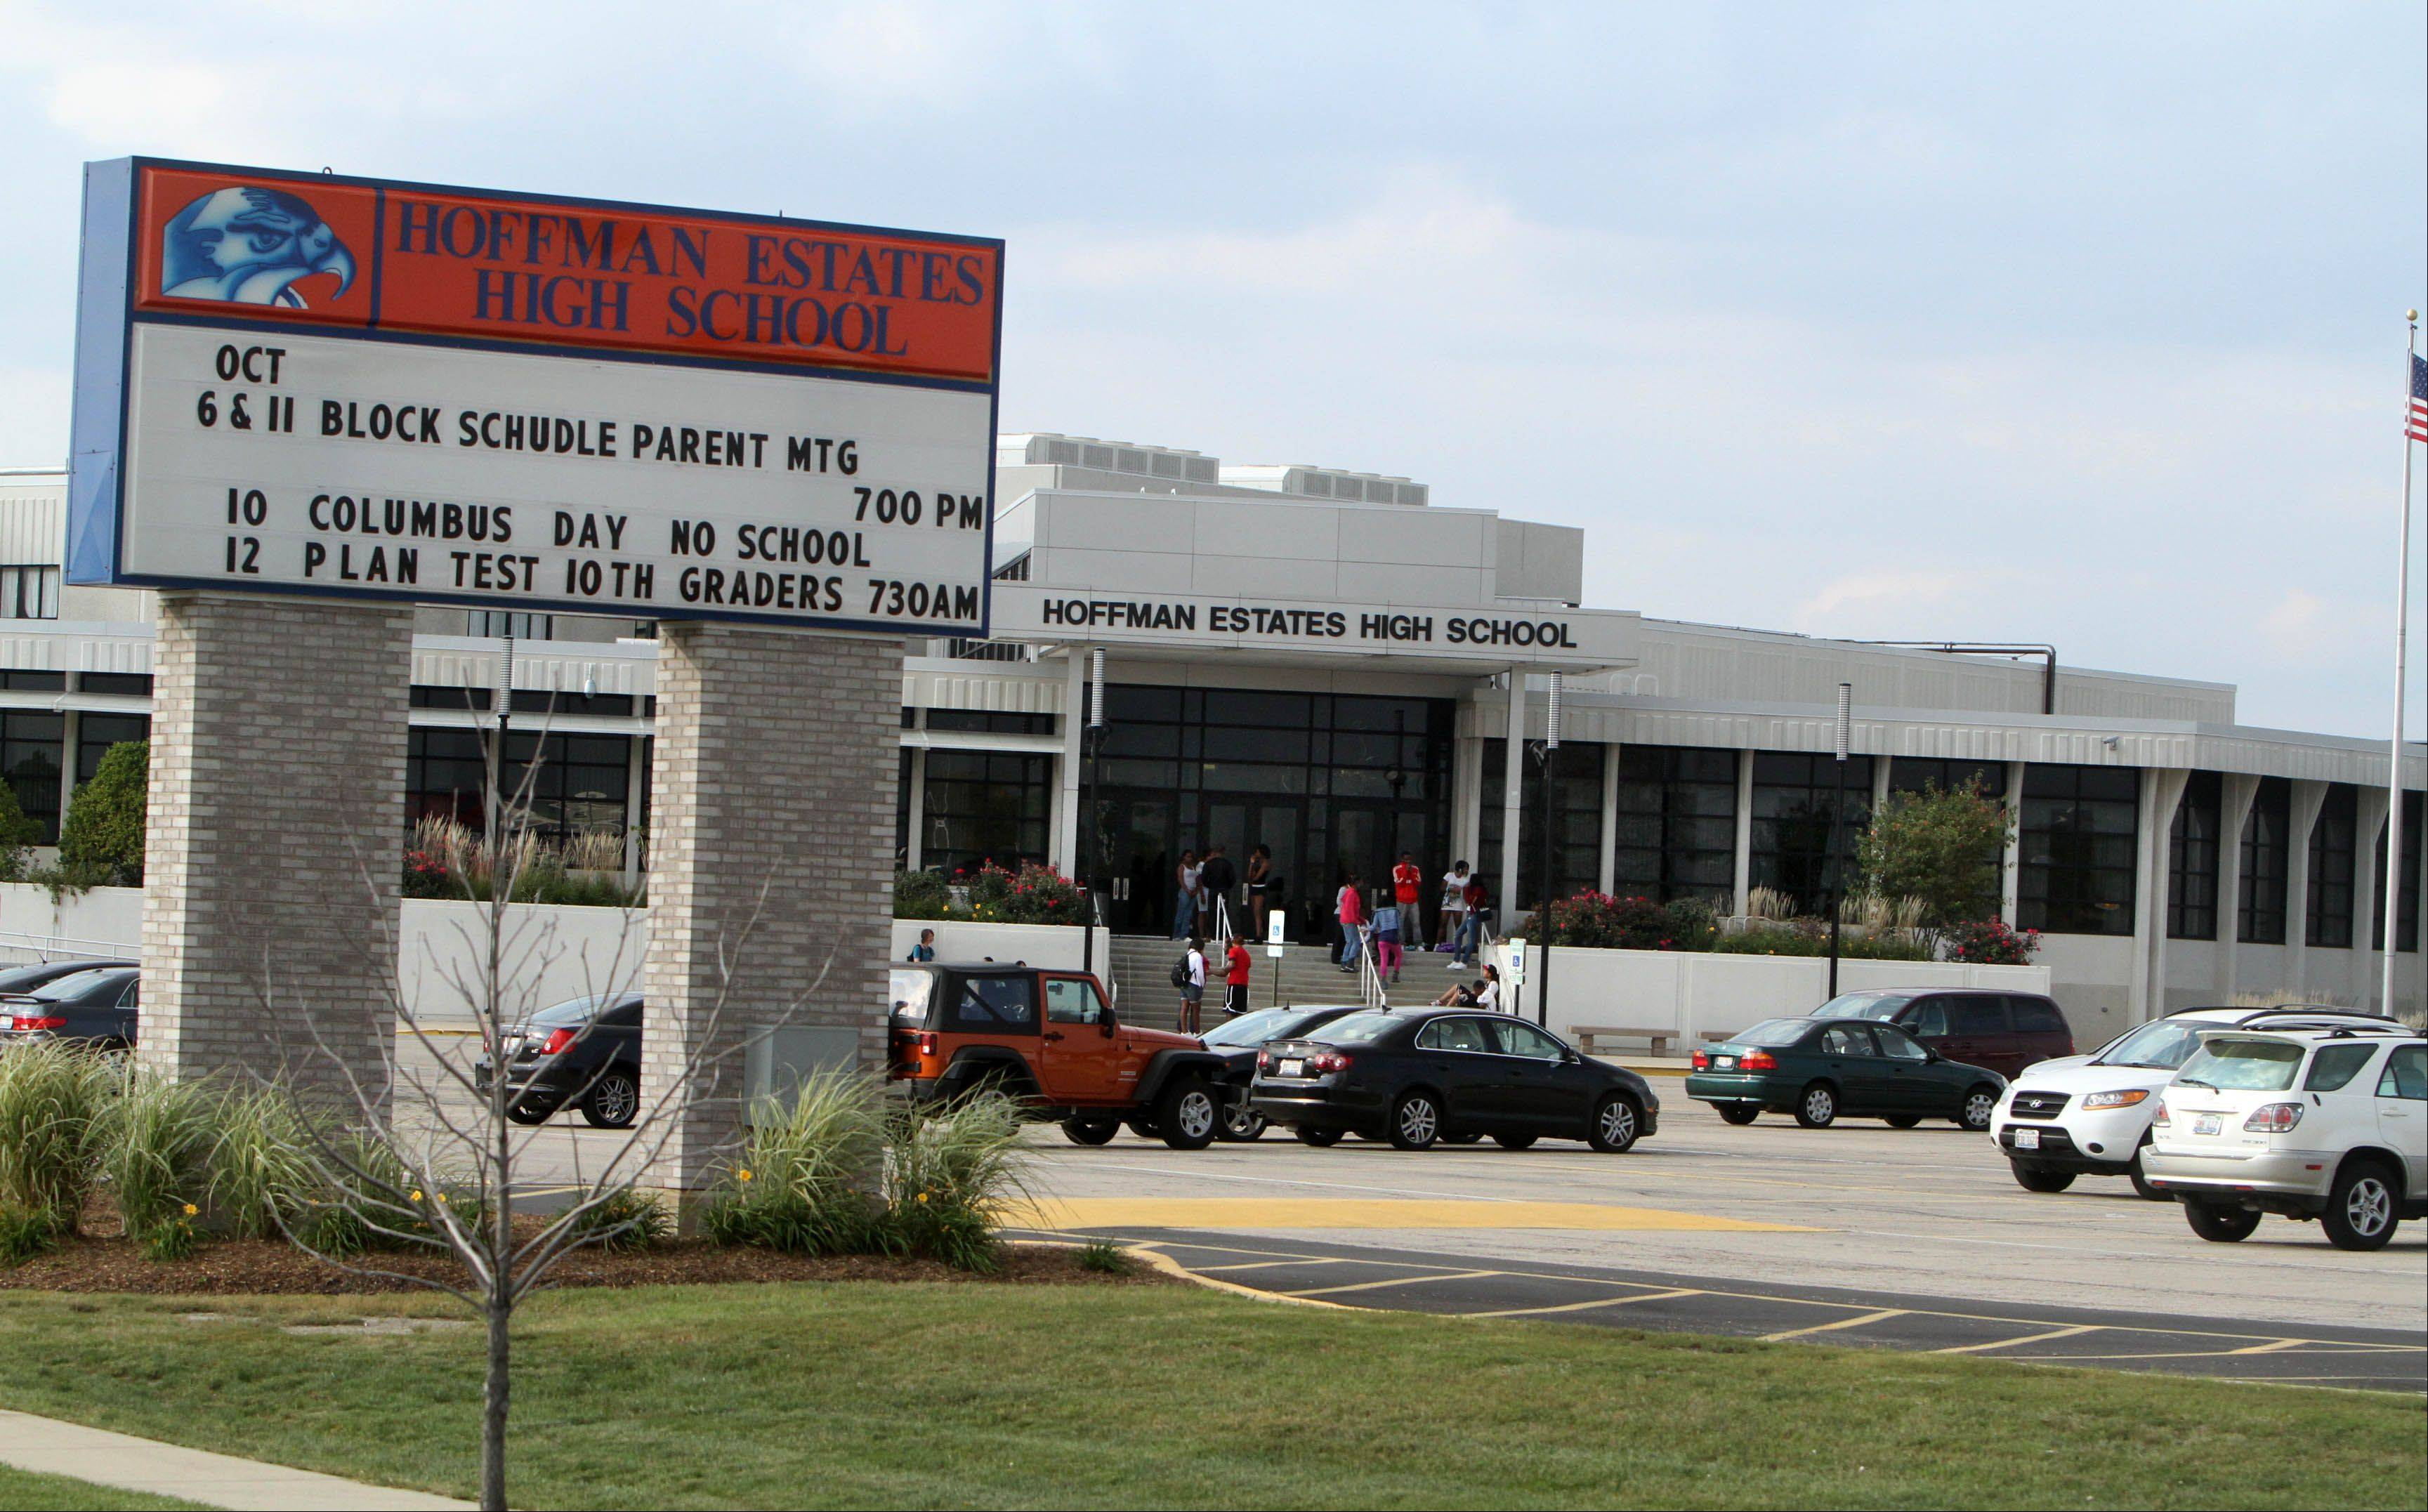 Officials from Palatine-Schaumburg High School District 211 have released a statement saying that reports of hazing involving the Hoffman Estates High School boys' varsity basketball team that surfaced last week did not involve sexual misconduct.